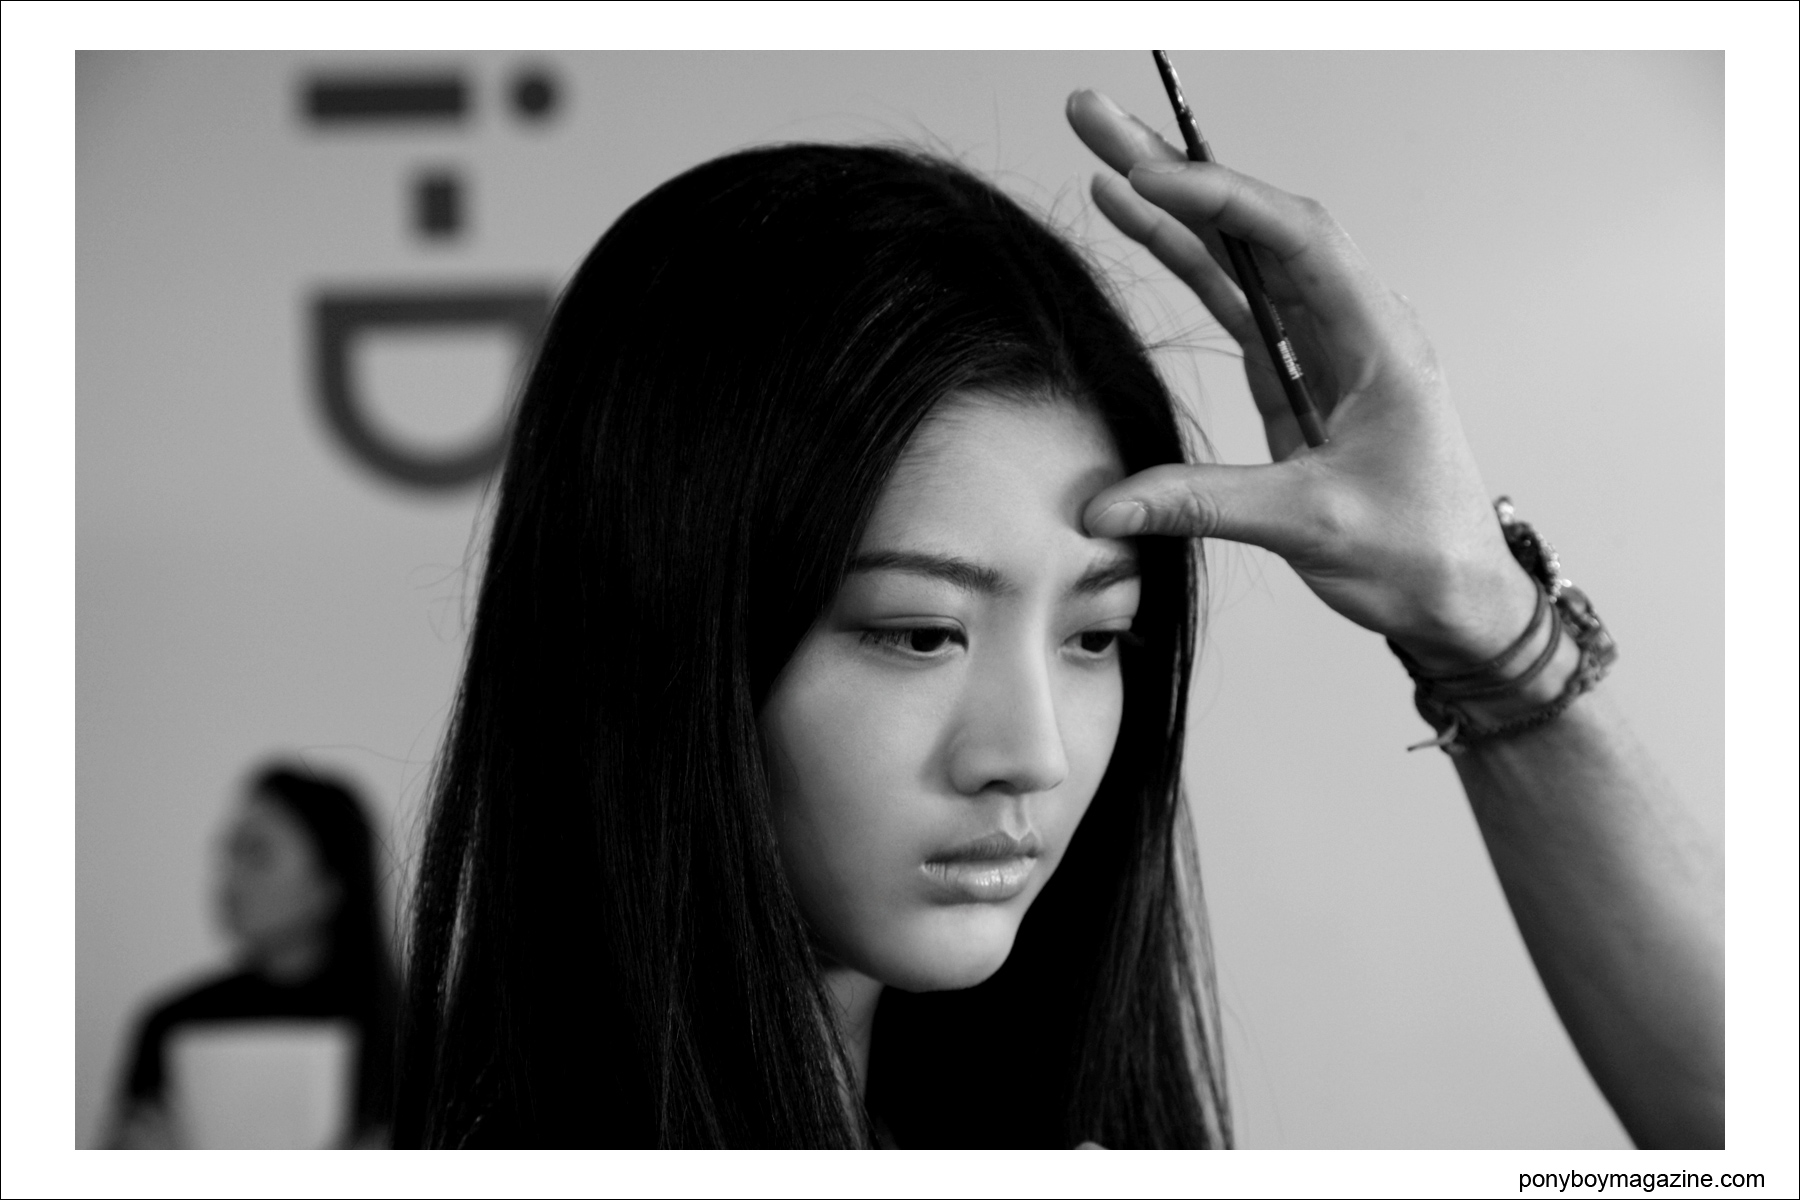 Asian beauty backstage for Timo Weiland A/W 2014, photographed by Alexander Thompson for Ponyboy Magazine.